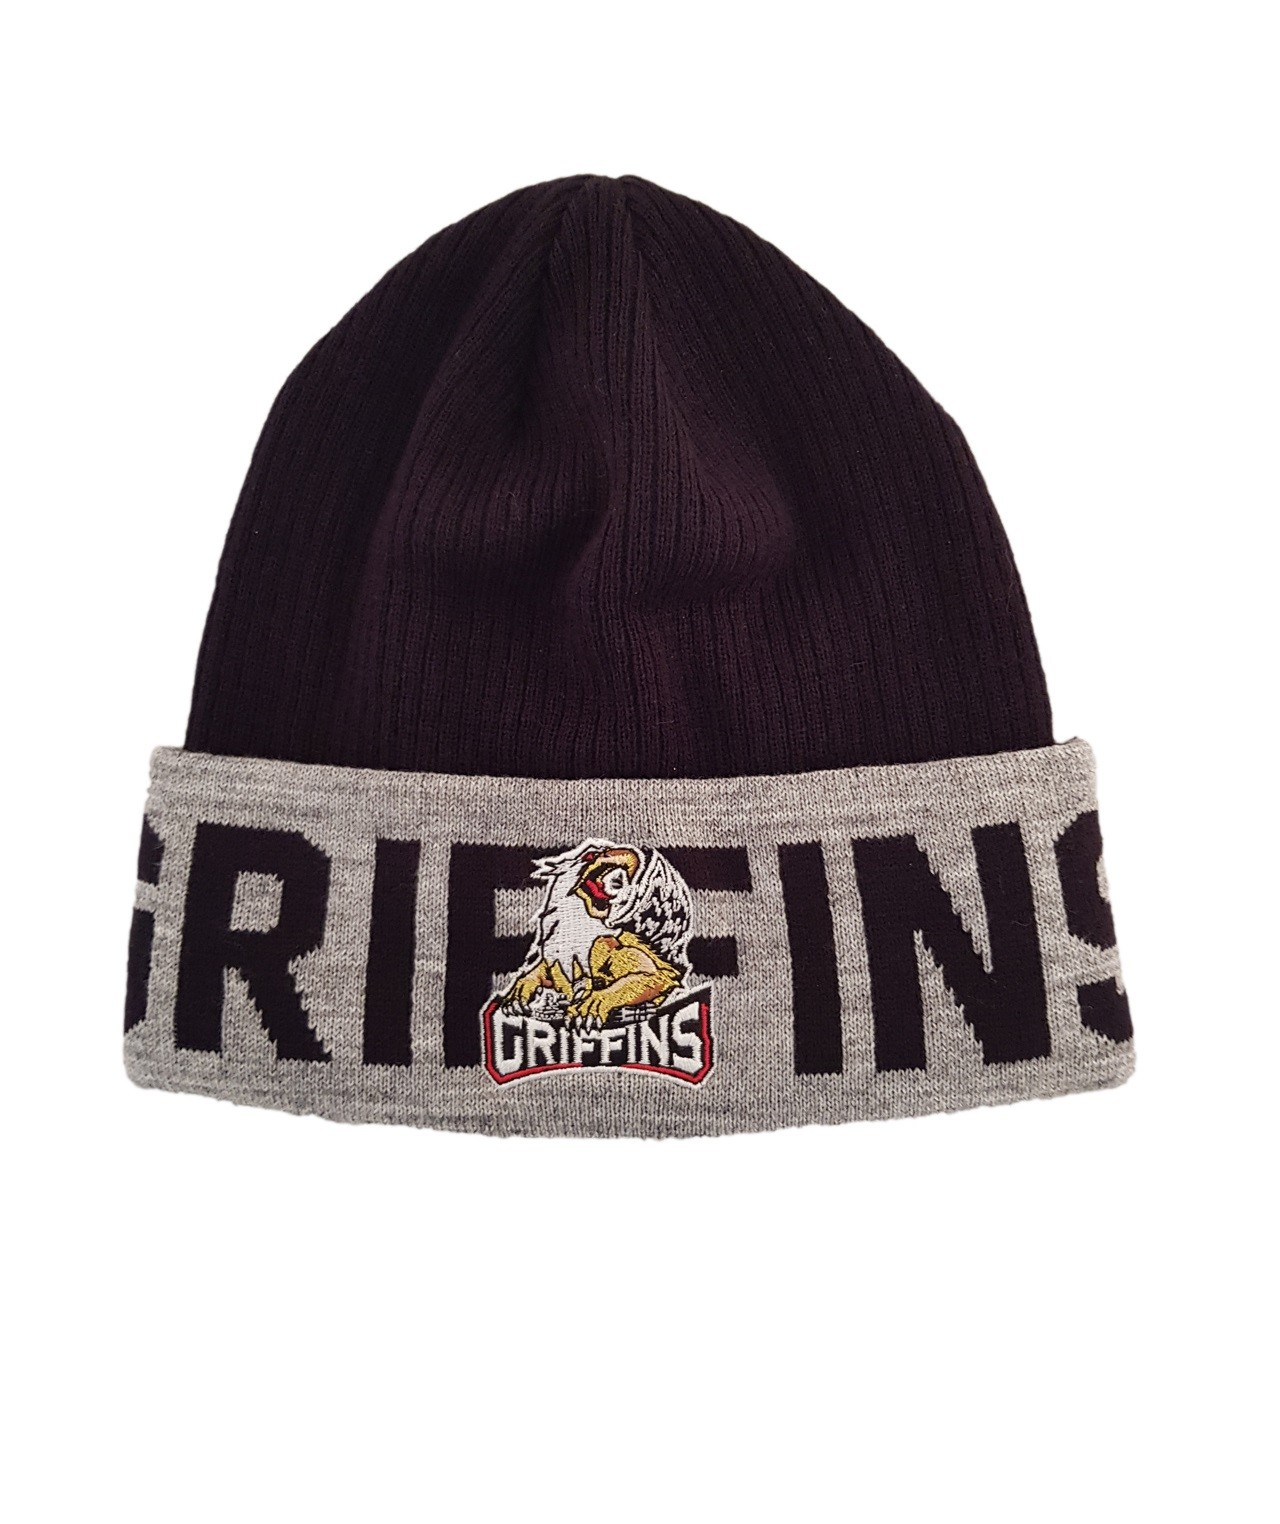 CCM Griffins Winter Hat C3951